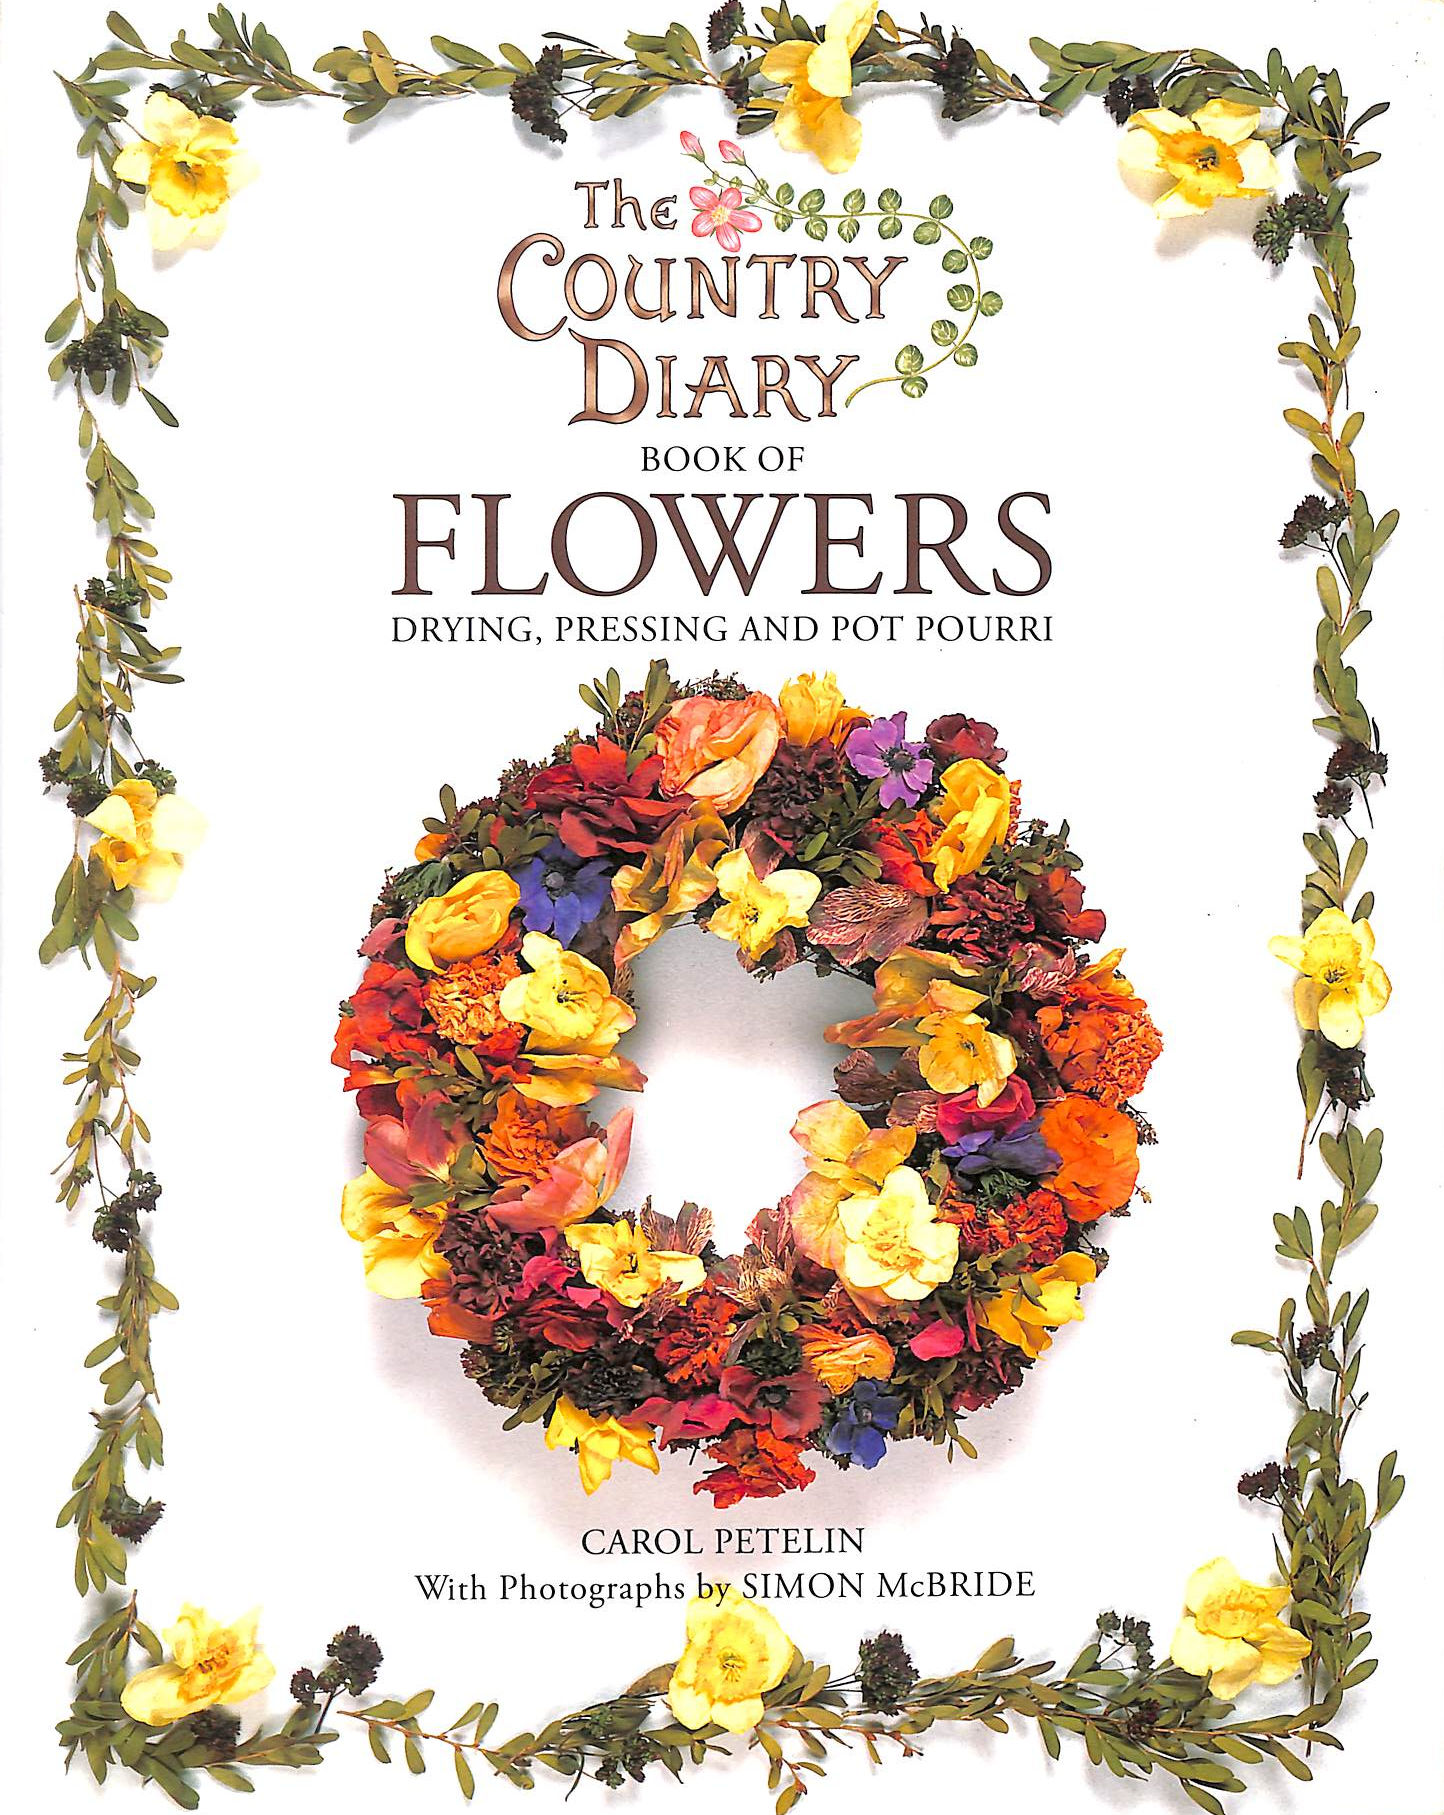 Image for The Country Diary Book of Flowers: Drying, Pressing and Pot Pourri (Country Diary)